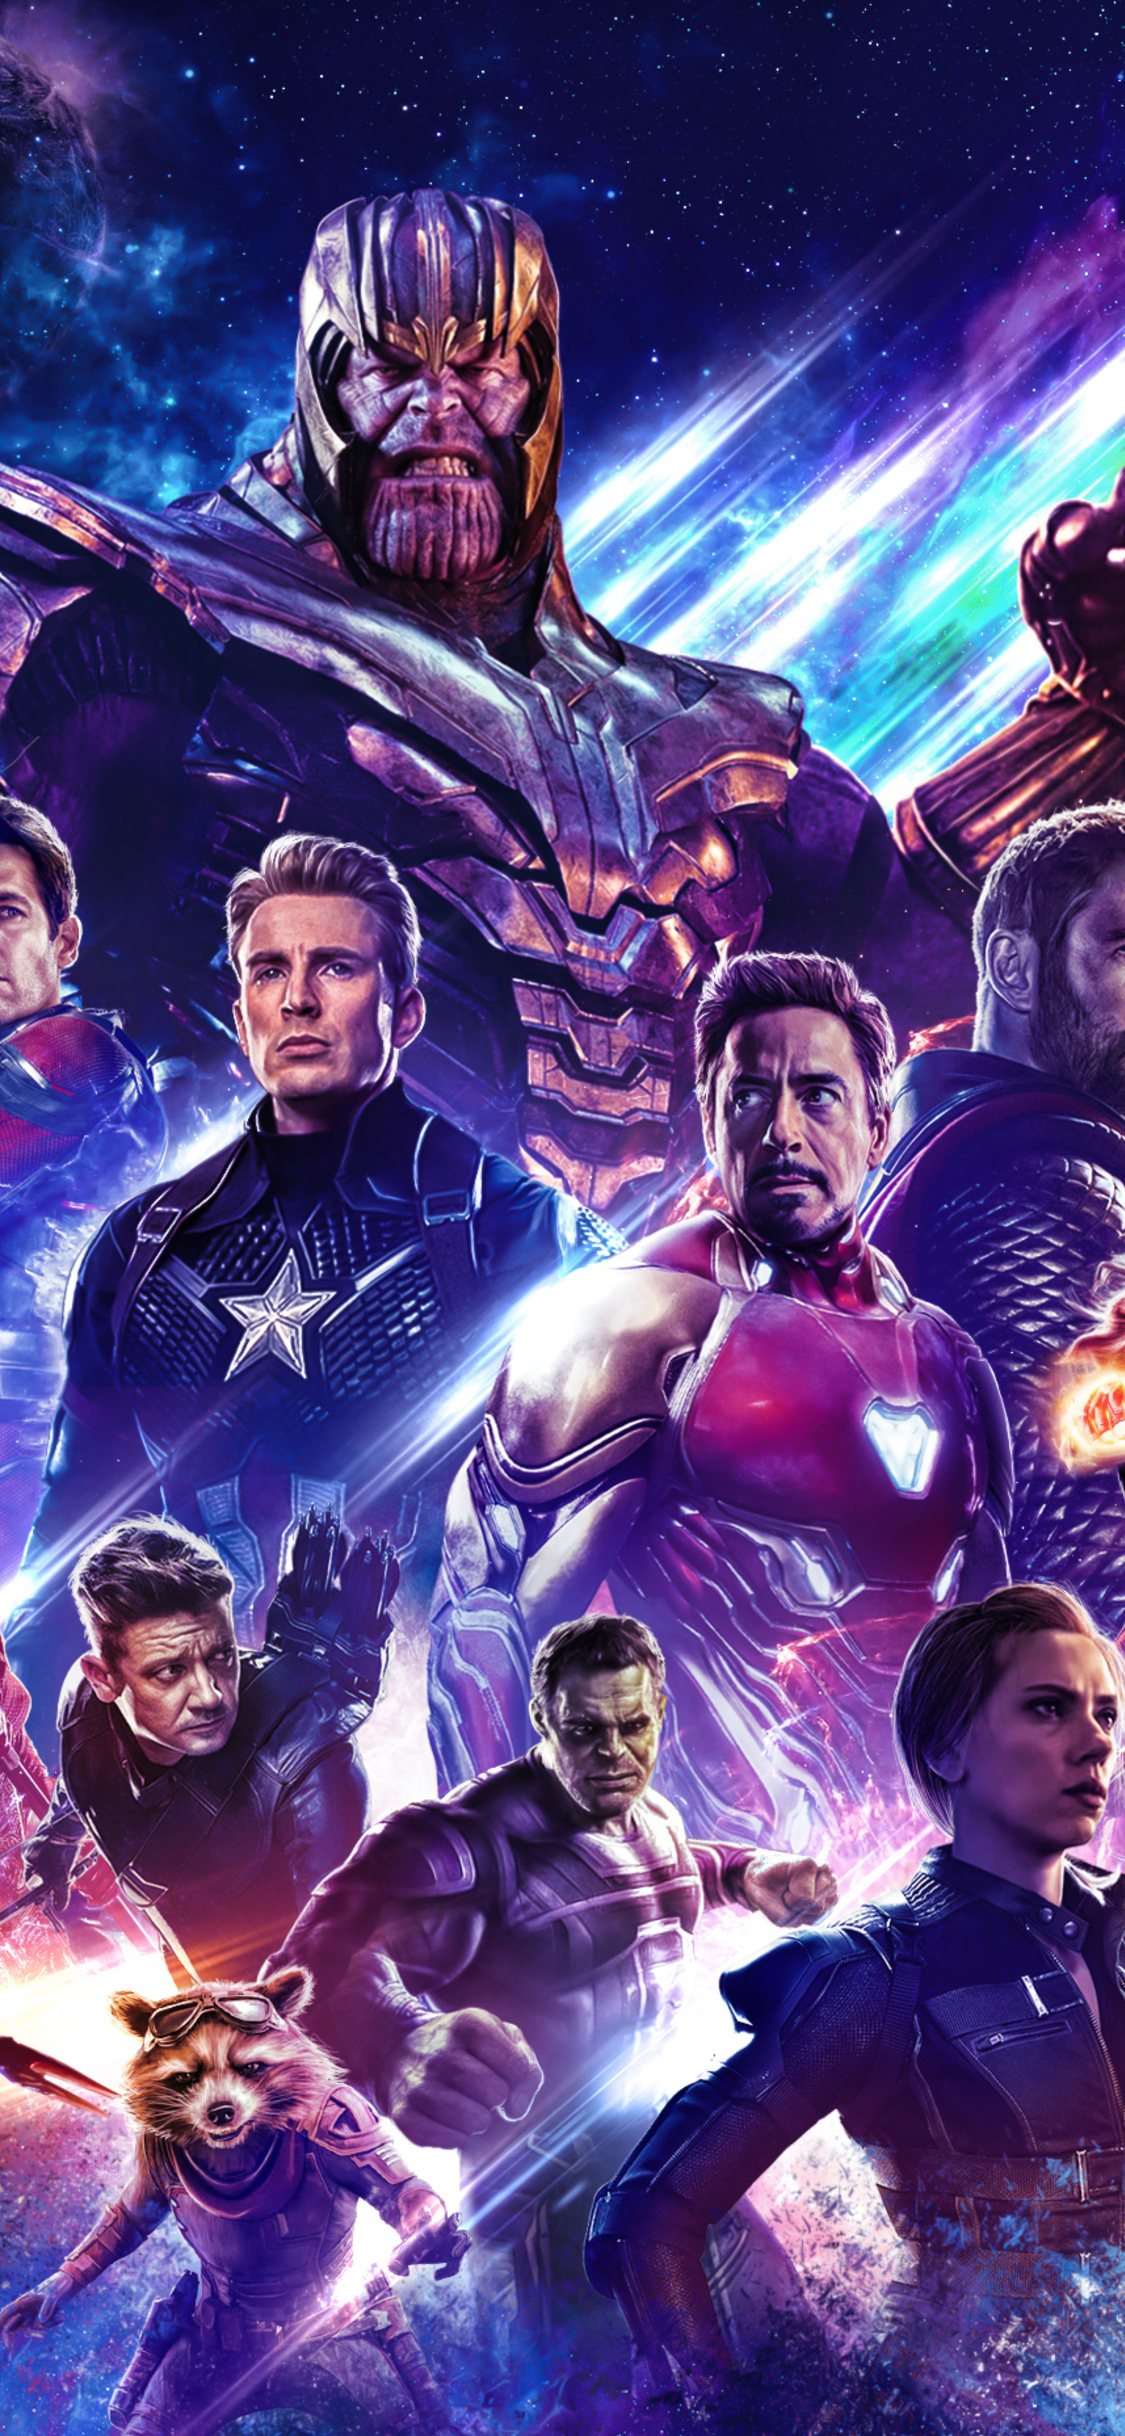 1125x2436 Poster Avengers Endgame Iphone Xsiphone 10iphone X Hd 4k